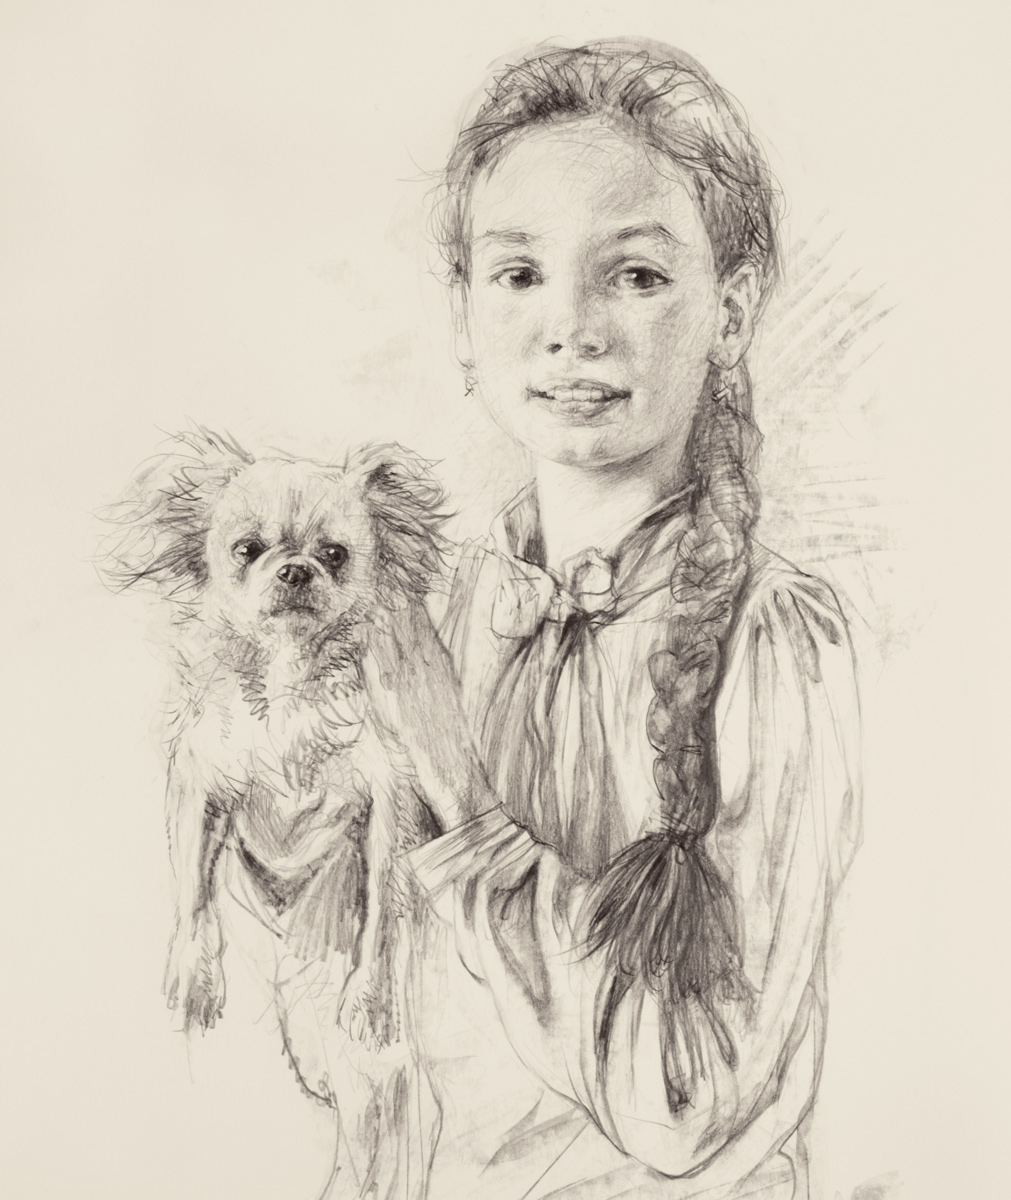 Sonia with a Dog